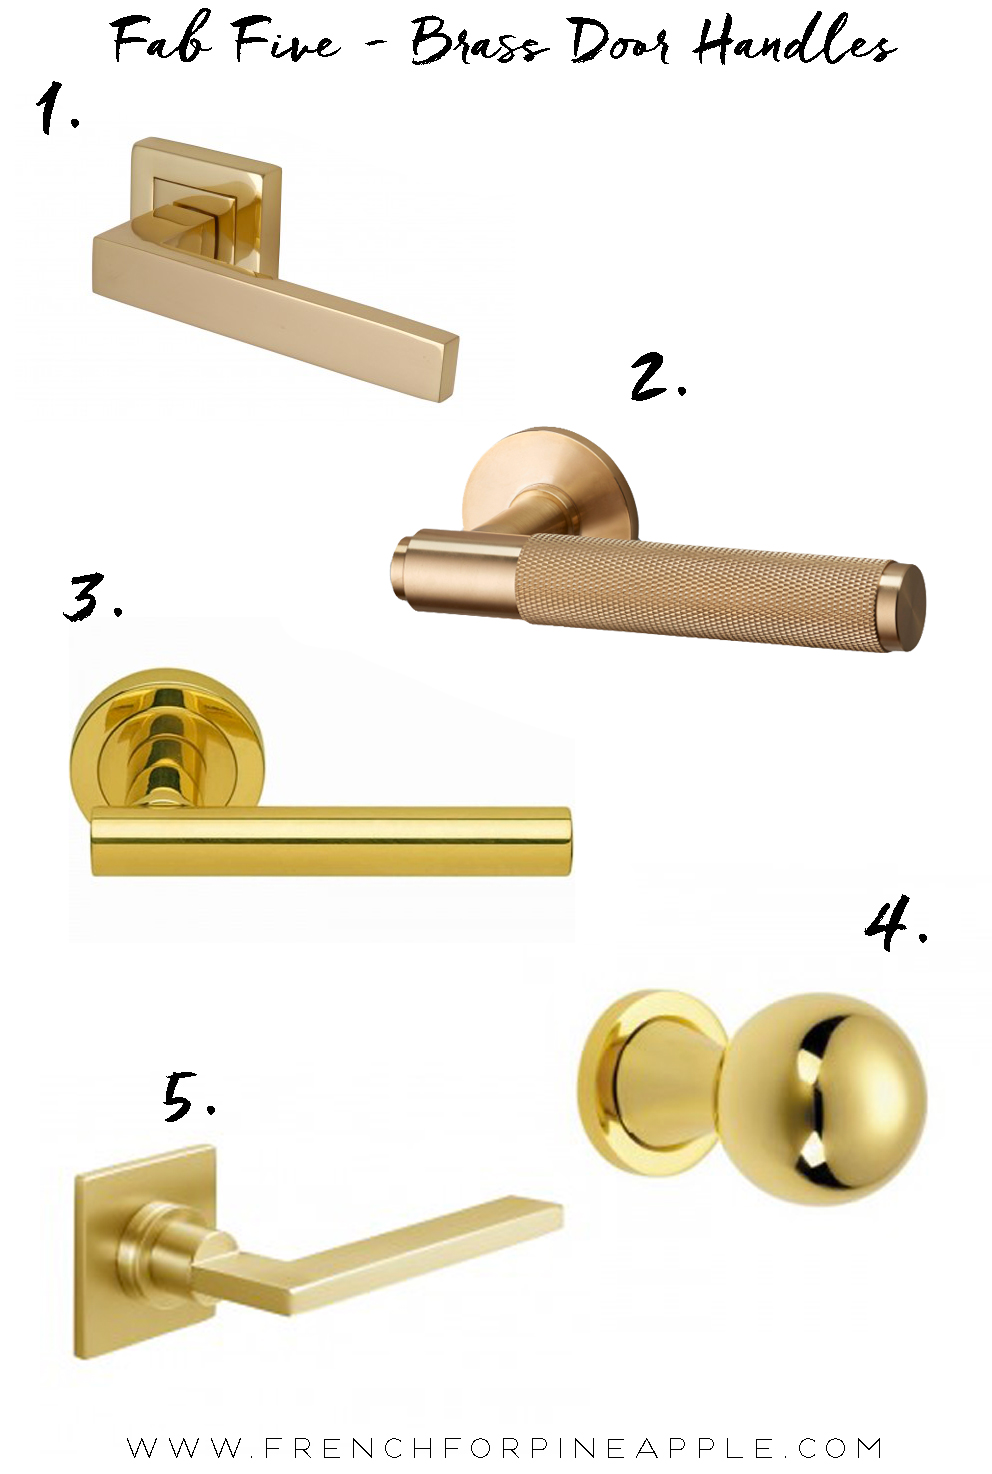 French For Pineapple Blog - Fab Five Brass Door Handles